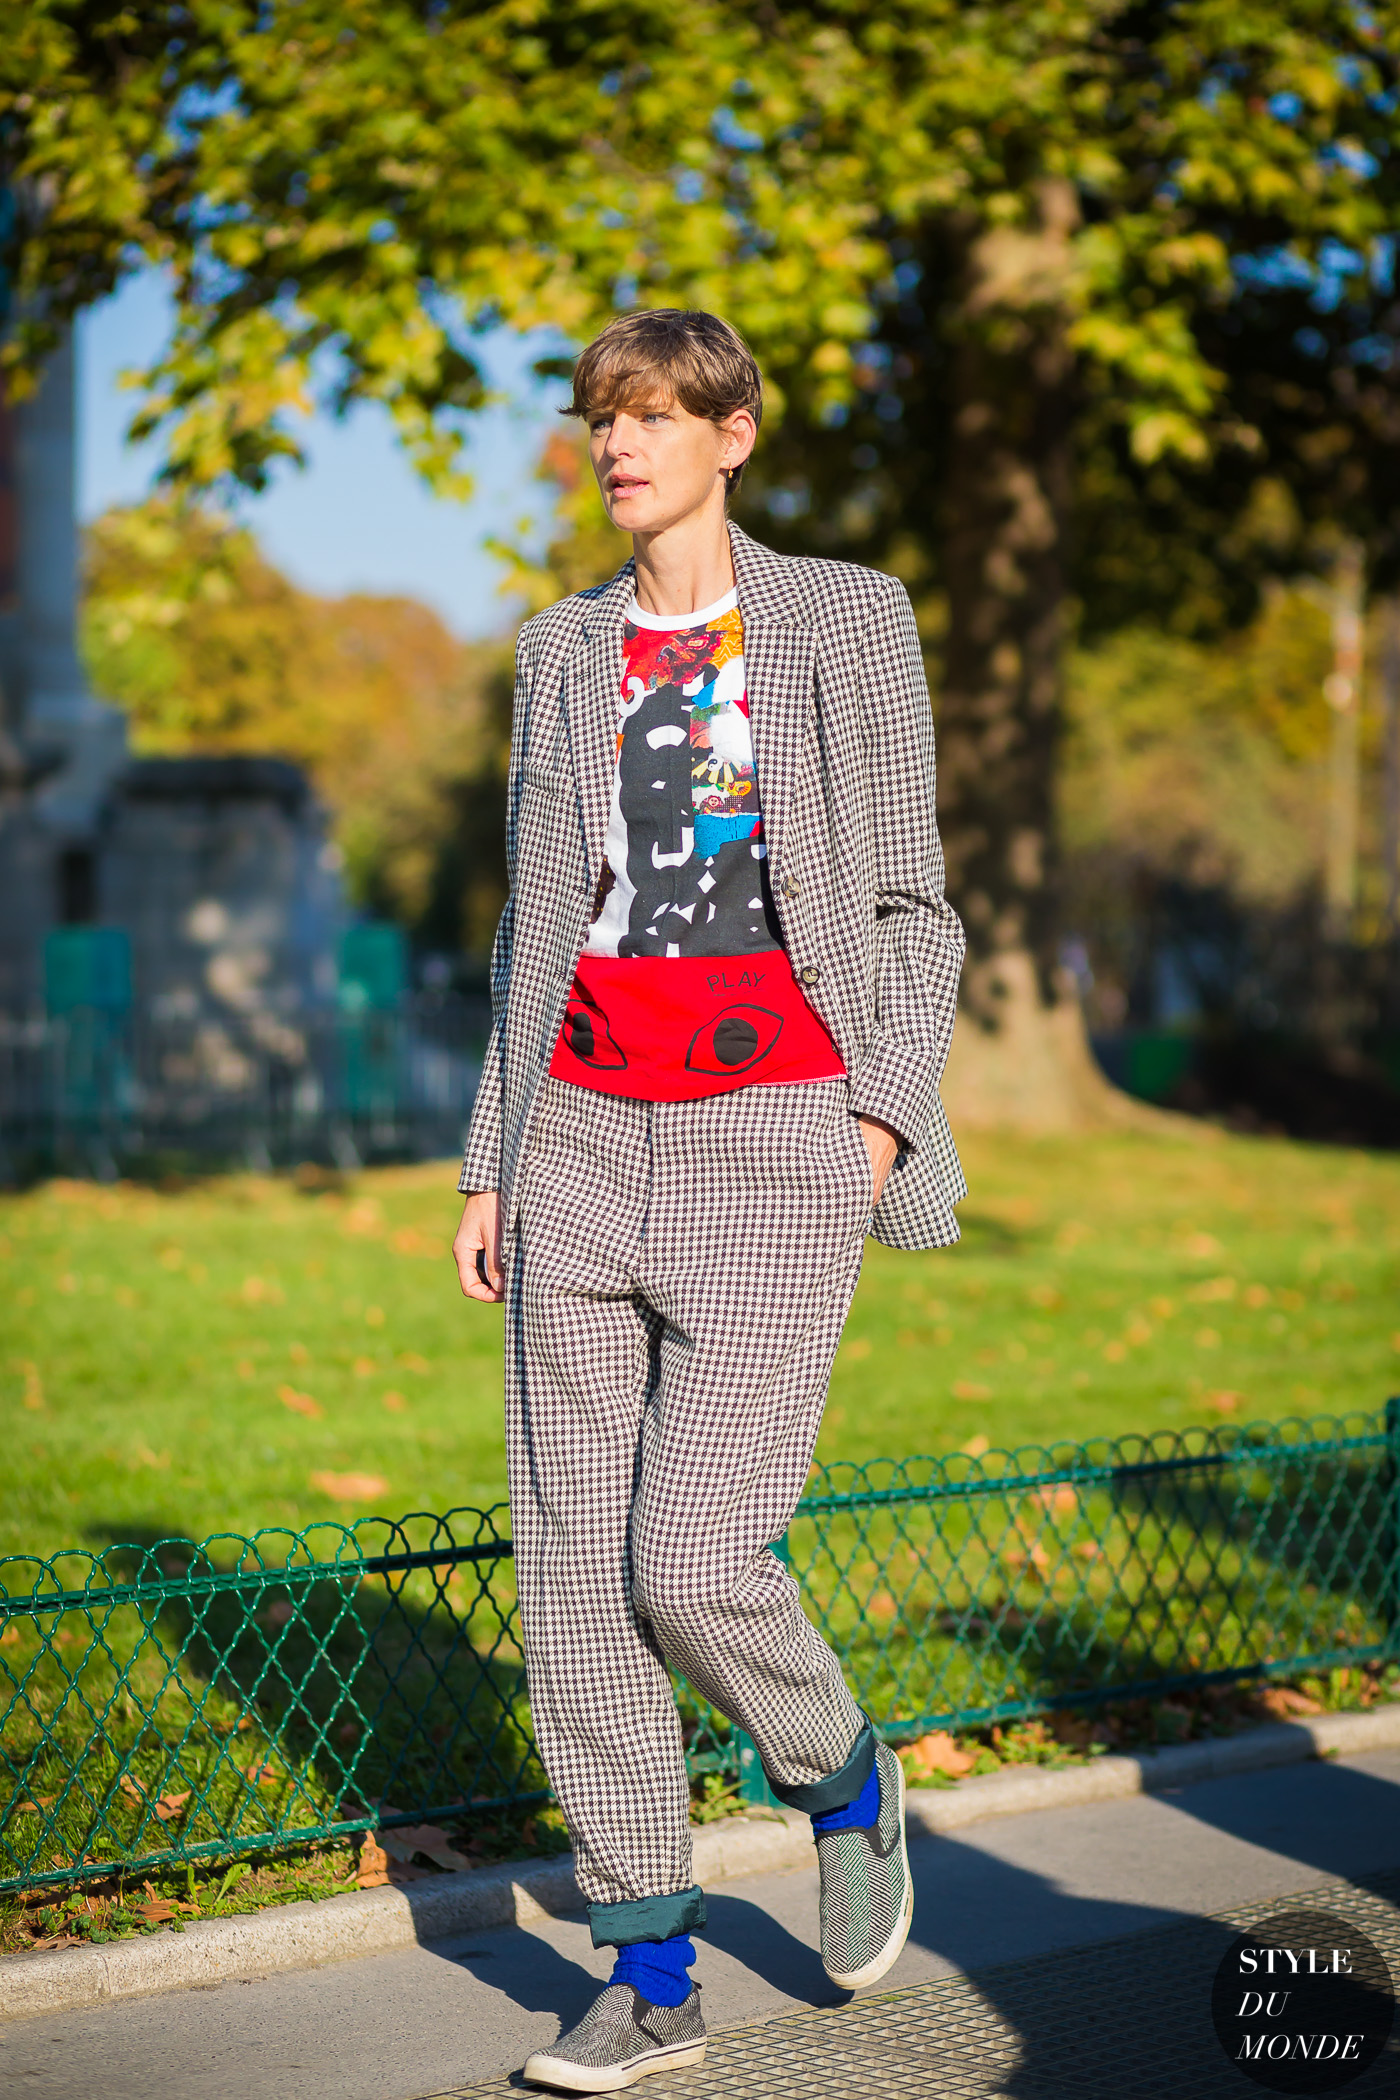 Stella Tennant by STYLEDUMONDE Street Style Fashion Photography